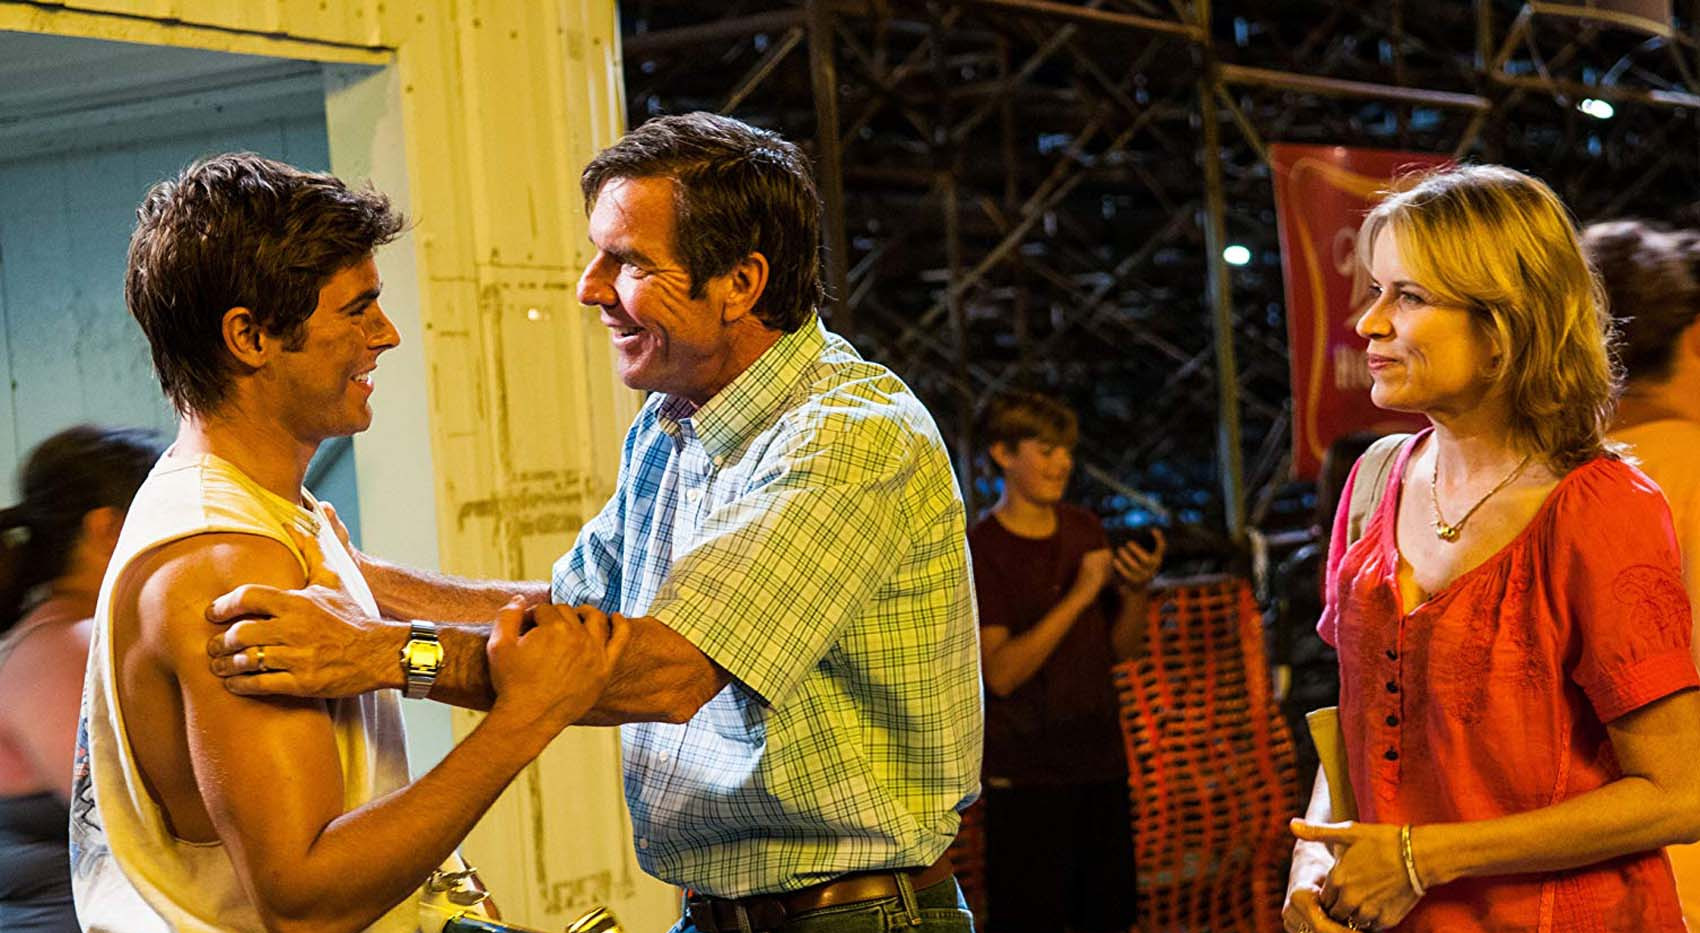 Dennis Quaid, Kim Dickens, and Zac Effront in Hearland